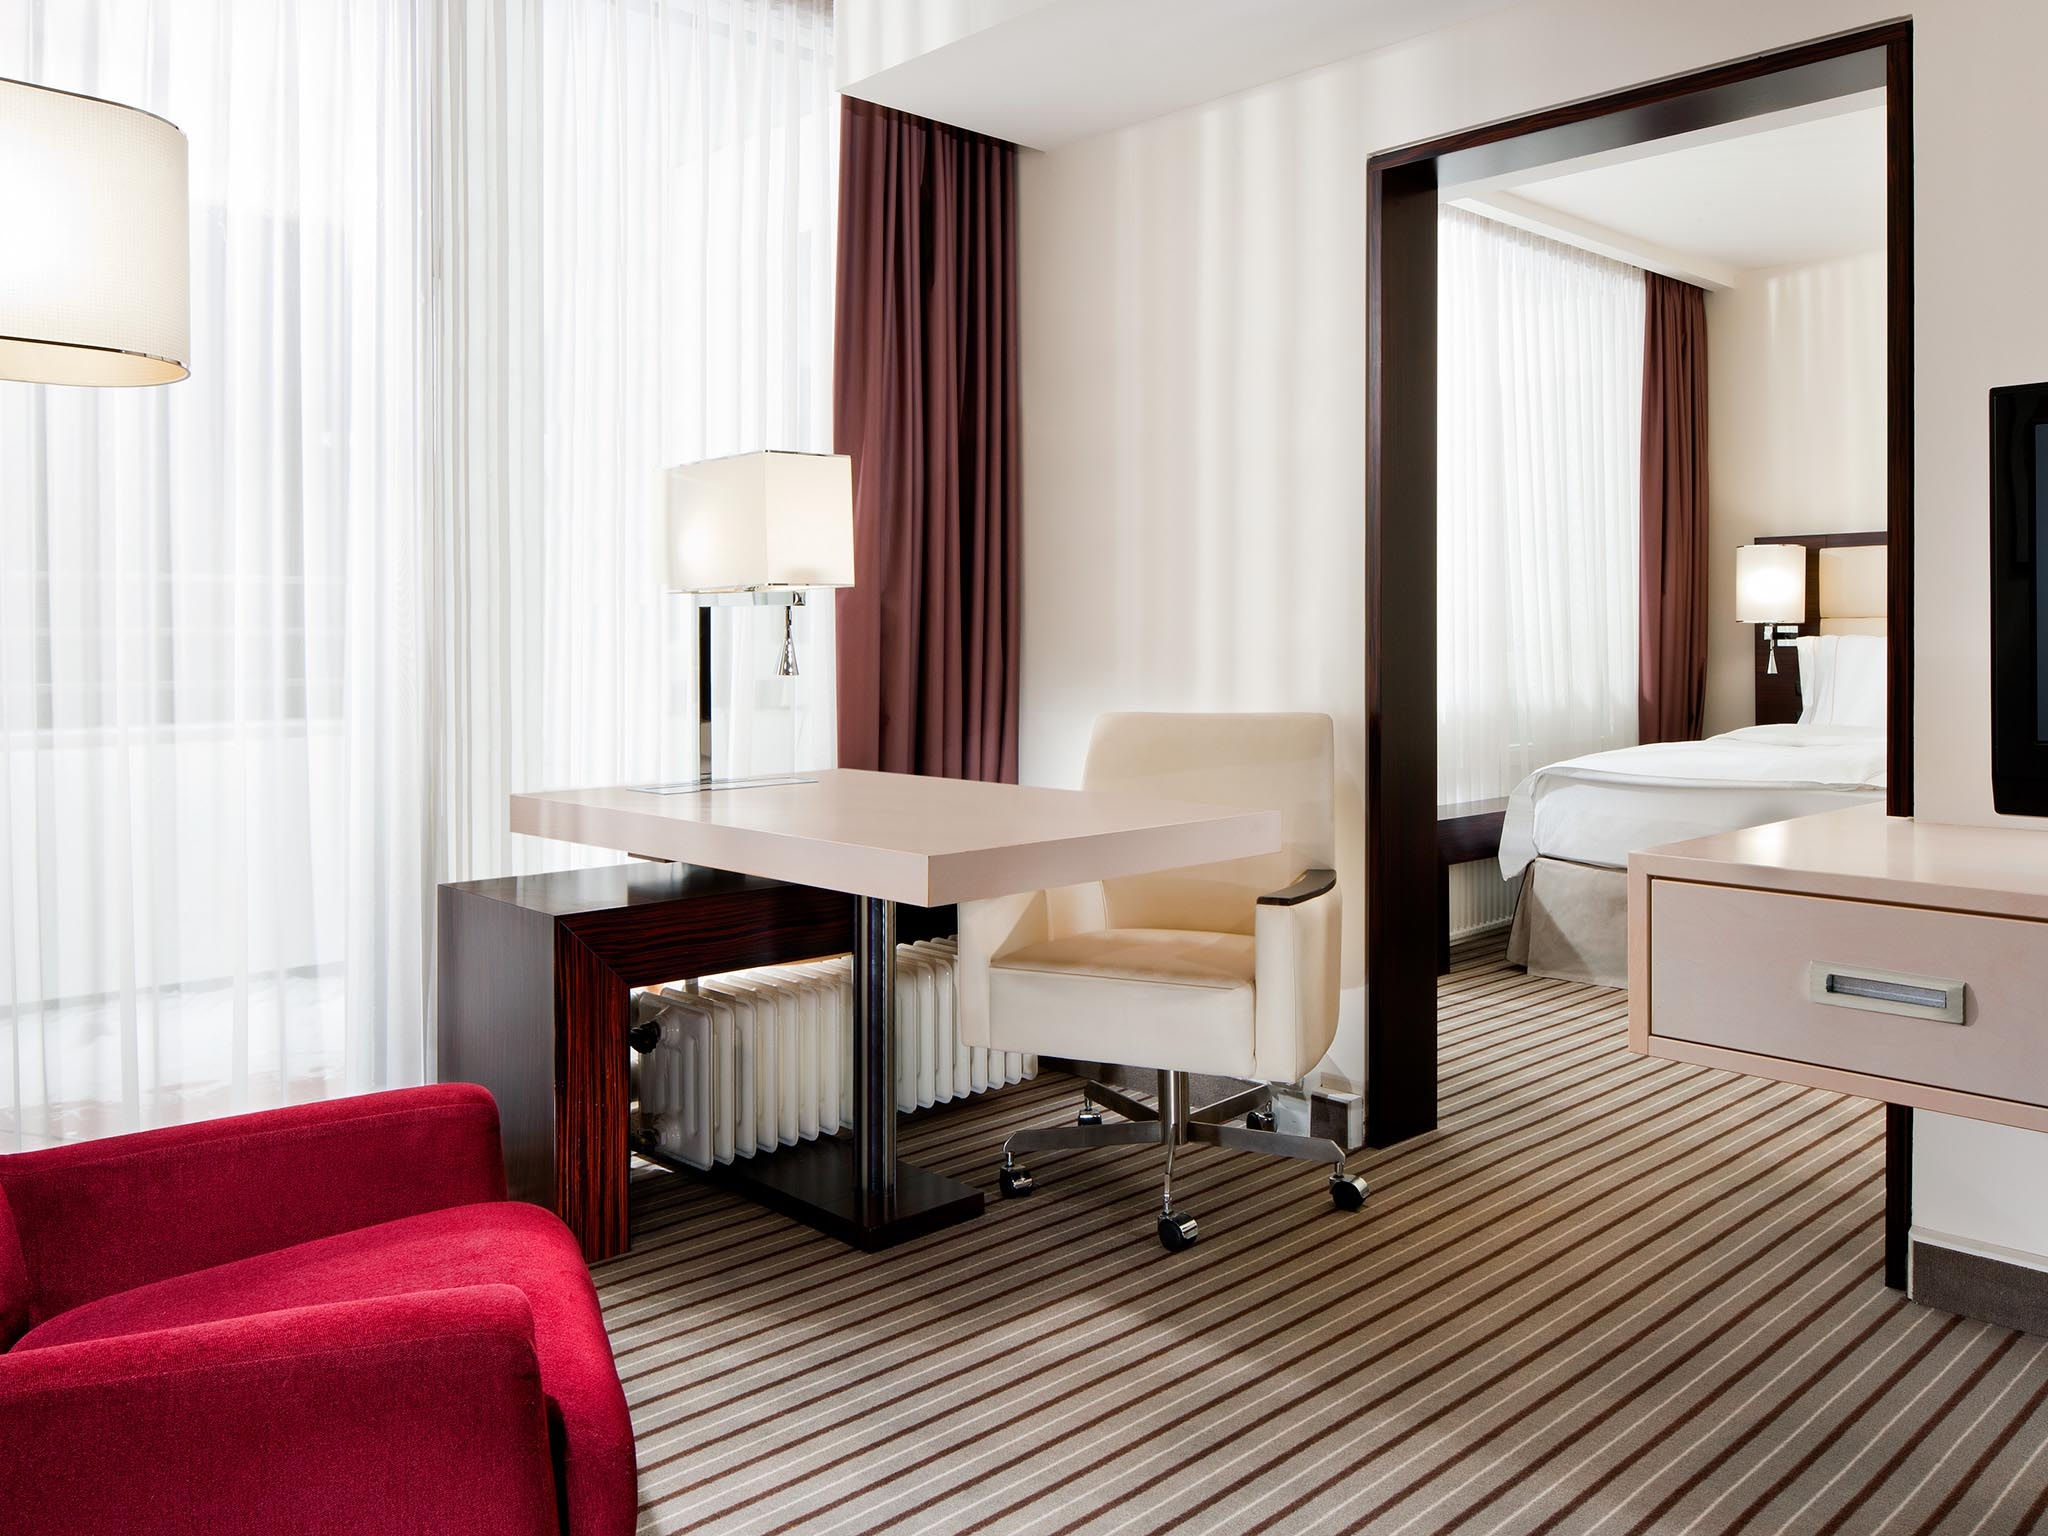 Junior Suite - Sheraton Munich Arabellapark hotel